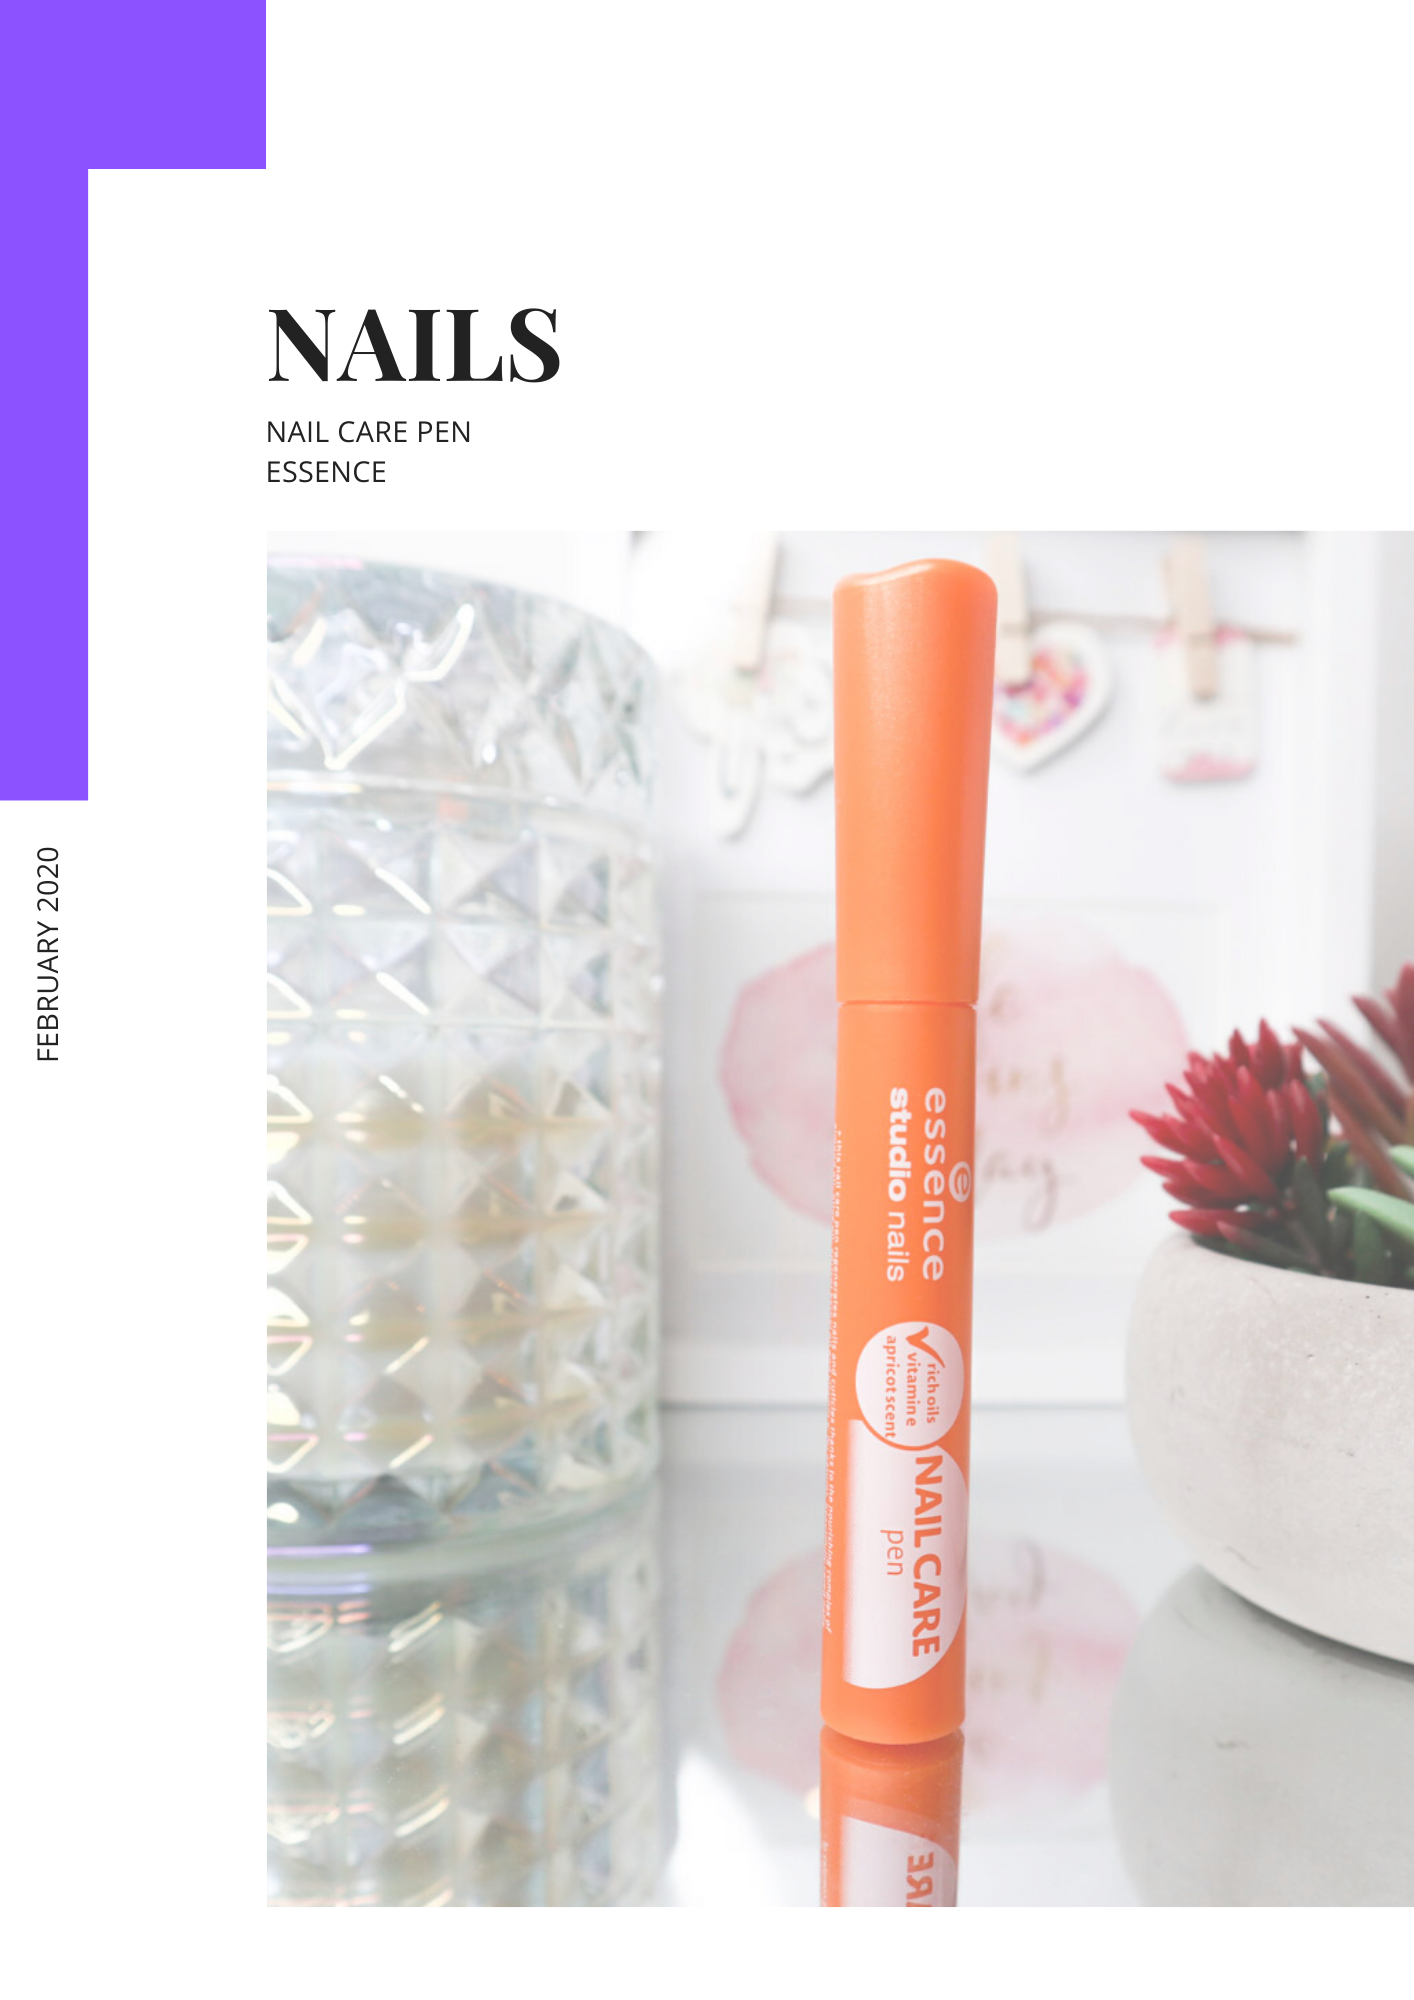 NAIL CARE PEN - ESSENCE